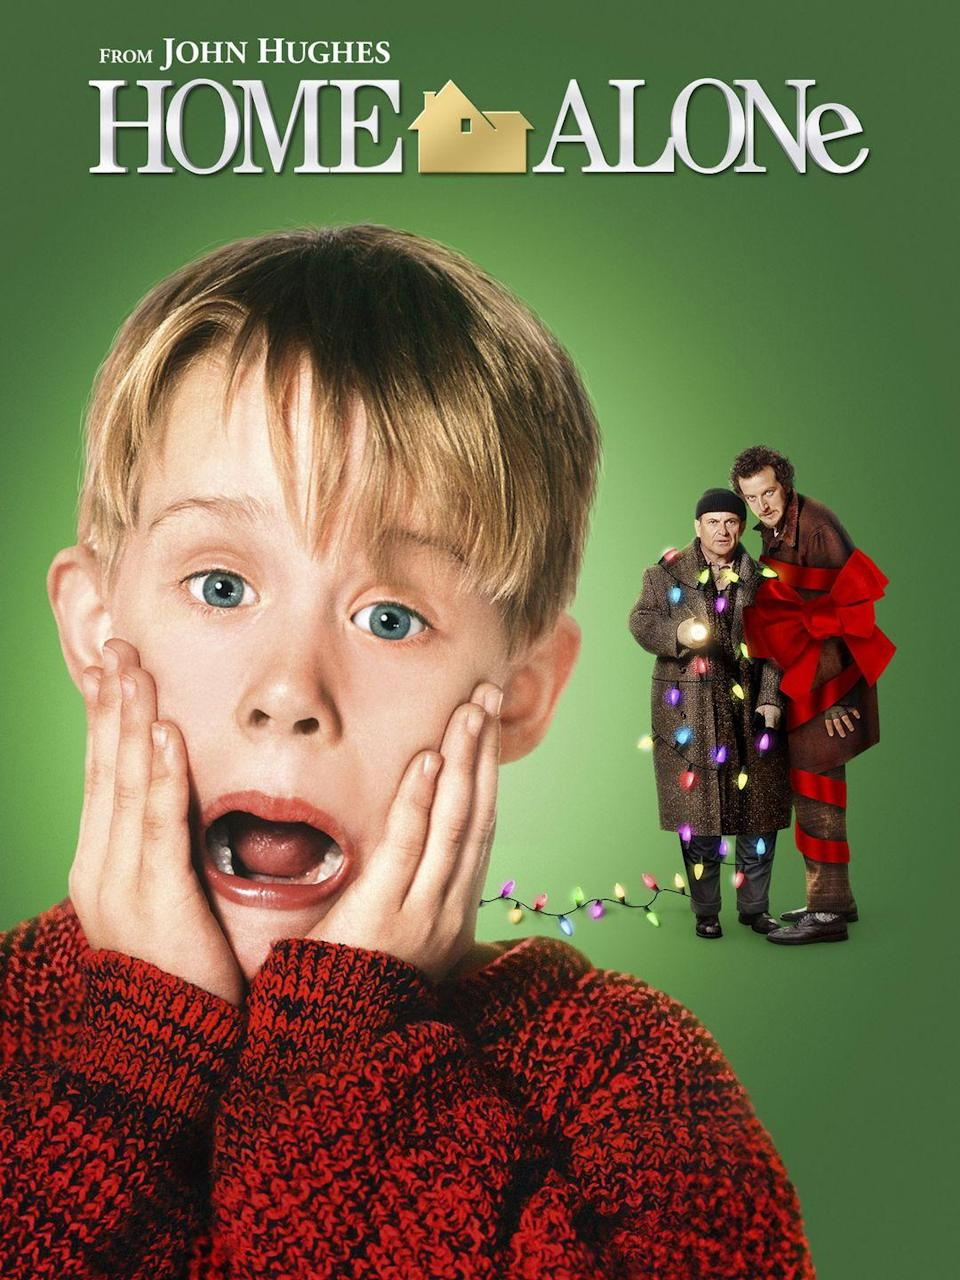 """<p>Nearly 30 years have passed since most-watched Christmas movie <em>Home Alone</em> <a href=""""https://www.forbes.com/sites/simonthompson/2018/12/02/the-25-highest-grossing-christmas-movies-of-all-time-at-the-u-s-box-office-2/#63ae1d9c95be"""" rel=""""nofollow noopener"""" target=""""_blank"""" data-ylk=""""slk:earned $285 million at the box office"""" class=""""link rapid-noclick-resp"""">earned $285 million at the box office</a>, but we still love watching 8-year-old Kevin McCallister plot and scheme his way out of a home burglary today.</p><p><a class=""""link rapid-noclick-resp"""" href=""""https://www.amazon.com/Home-Alone-Macaulay-Culkin/dp/B0031QNMKK/?tag=syn-yahoo-20&ascsubtag=%5Bartid%7C10055.g.1315%5Bsrc%7Cyahoo-us"""" rel=""""nofollow noopener"""" target=""""_blank"""" data-ylk=""""slk:WATCH NOW"""">WATCH NOW</a></p><p><strong>RELATED</strong>: <a href=""""https://www.goodhousekeeping.com/life/entertainment/a28634031/home-alone-reboot-disney-streaming/"""" rel=""""nofollow noopener"""" target=""""_blank"""" data-ylk=""""slk:Disney Is Rebooting Home Alone for Its Disney+ Streaming Service"""" class=""""link rapid-noclick-resp"""">Disney Is Rebooting <em>Home Alone </em>for Its Disney+ Streaming Service</a></p>"""